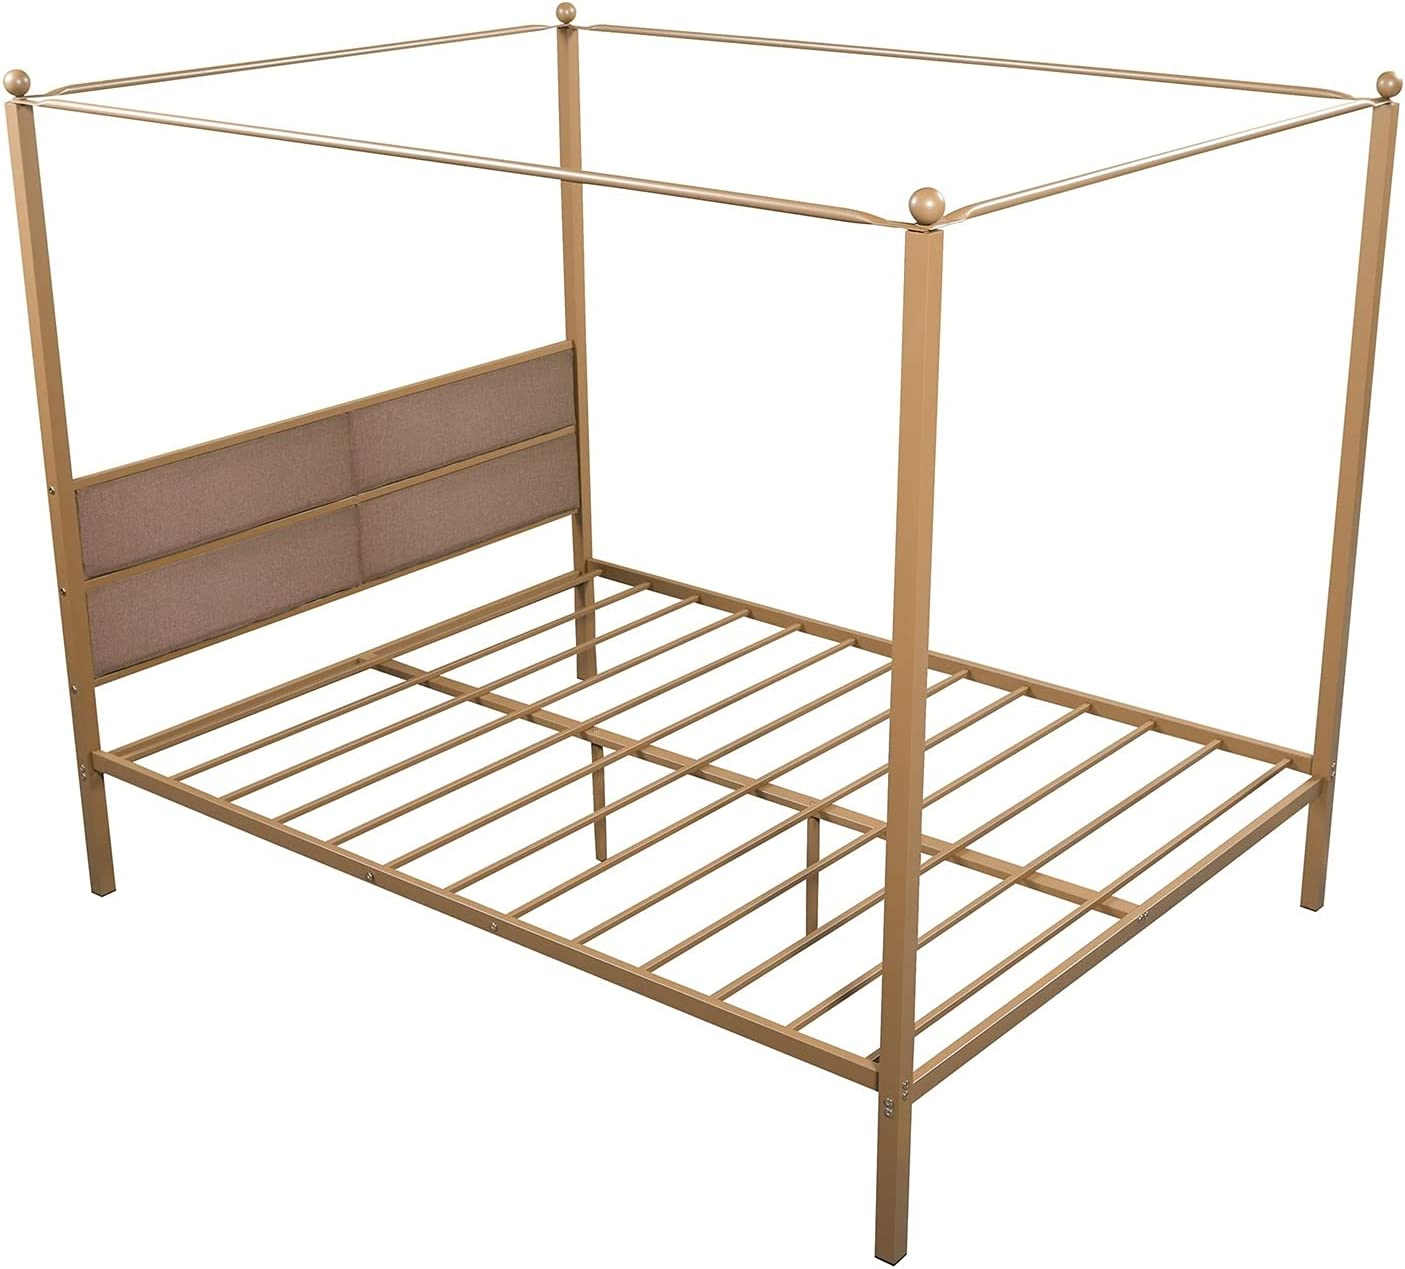 U D Atlanta Mall Double Bed Frame with Four-P Upholstered Canopy shop Queen Metal